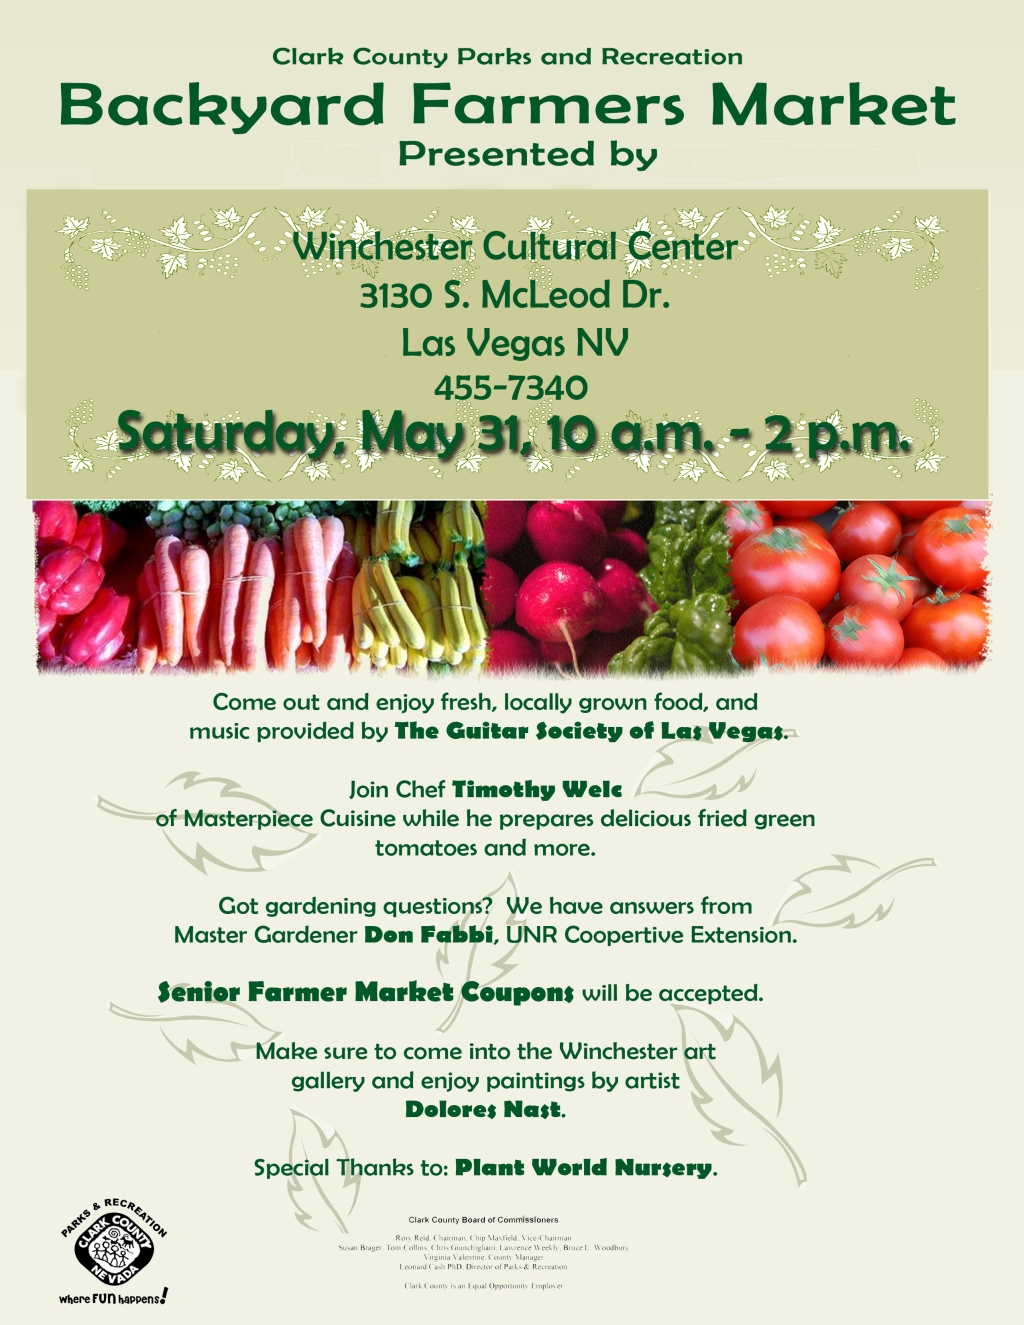 farmers market flyer farmers market flyer revised 5 farmers market flyer